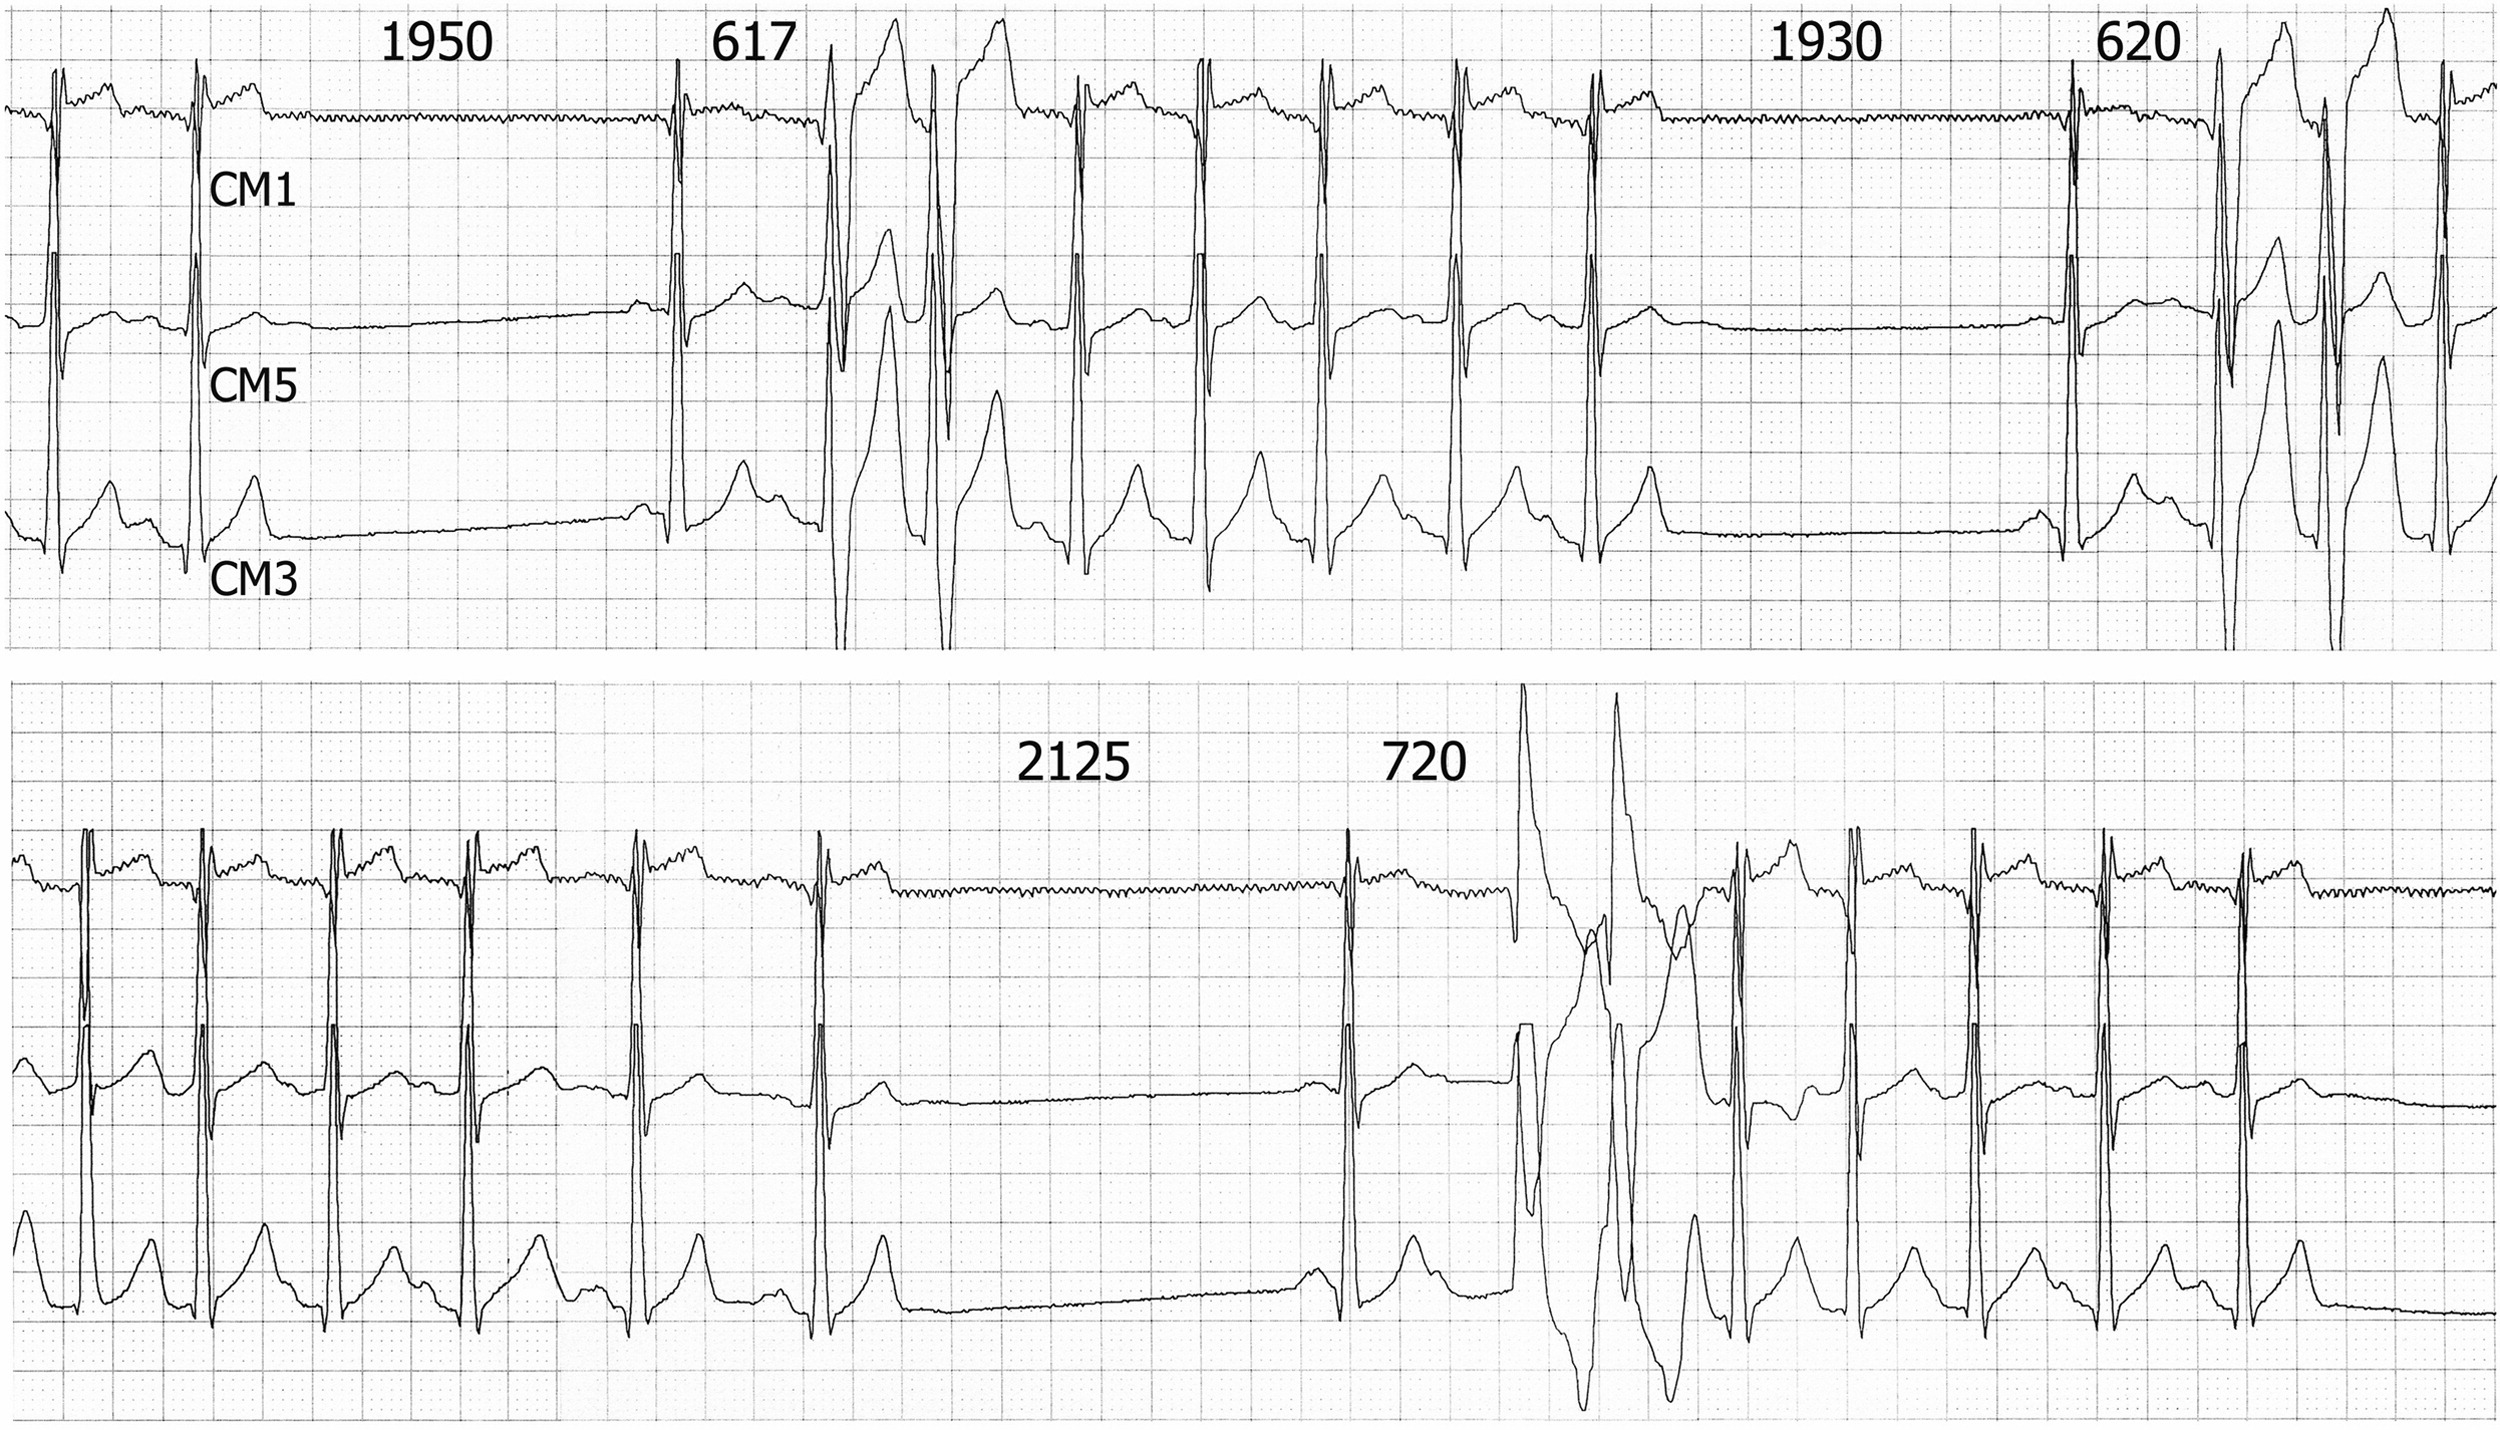 Nonsustained Atrial Tachycardia With Right Or Left Bundle